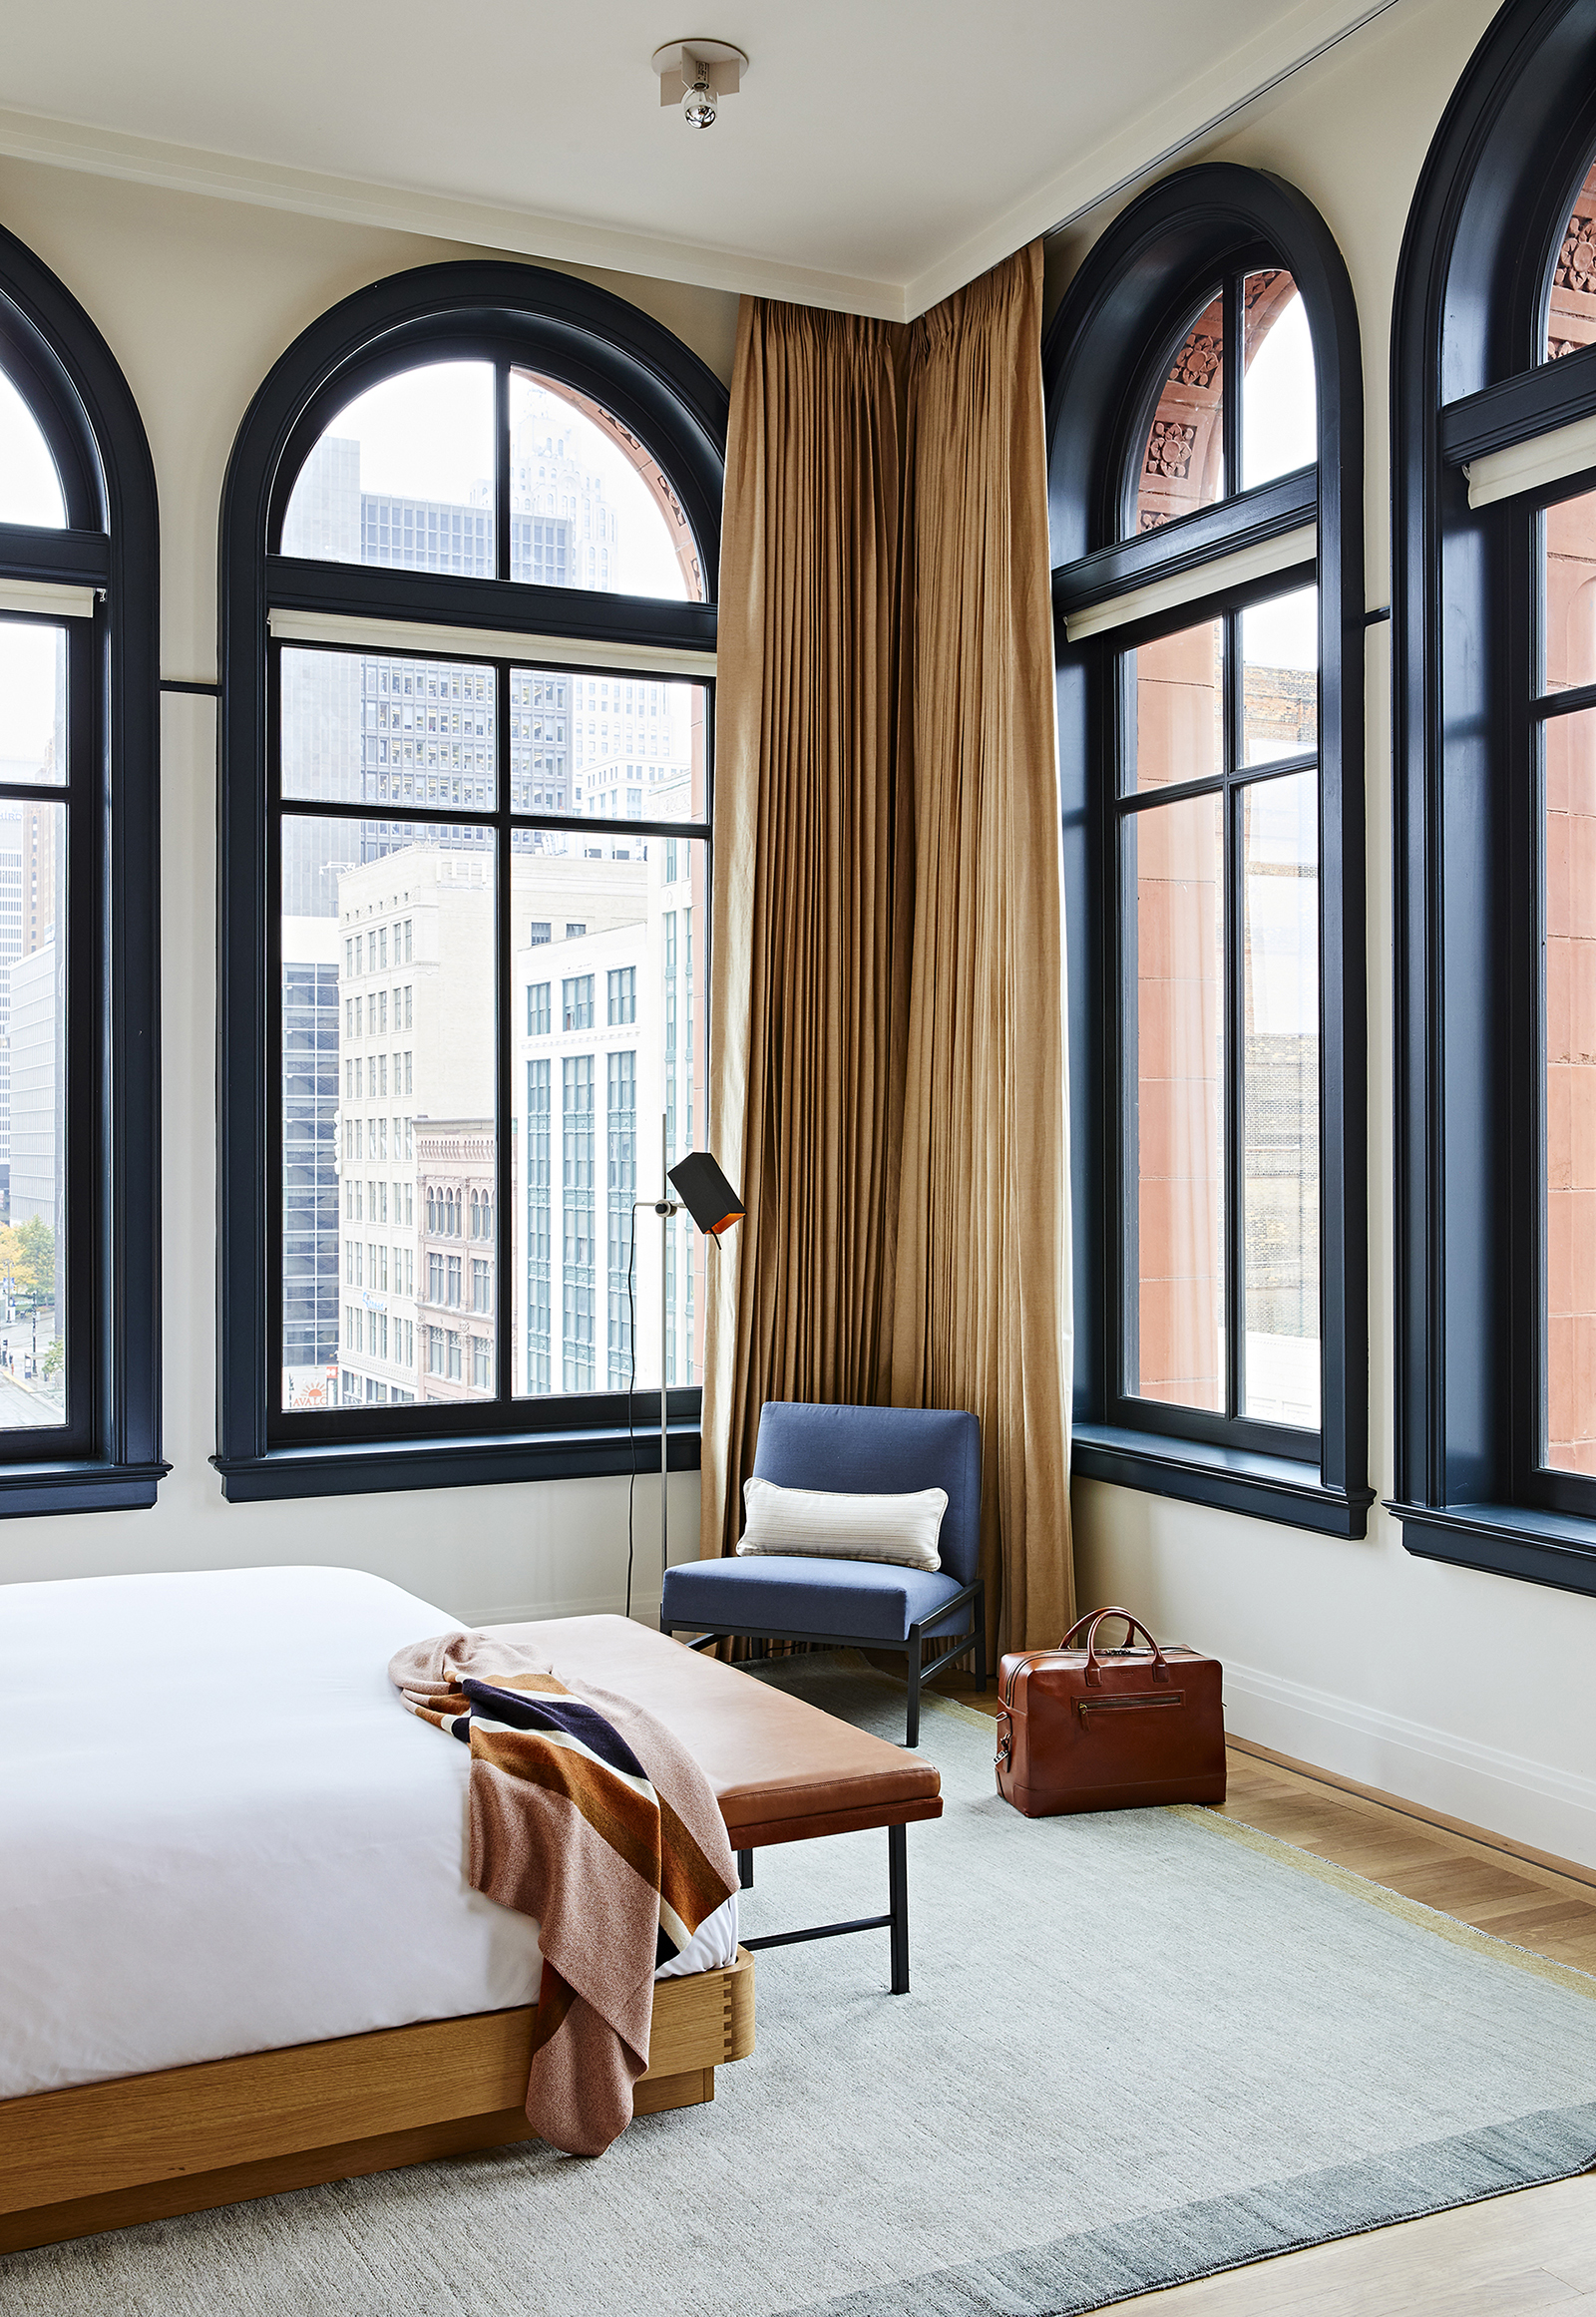 The structure retains its neoclassical features like the arch seen here in one of the rooms | Shinola Hotel| Gachot Studio | STIR